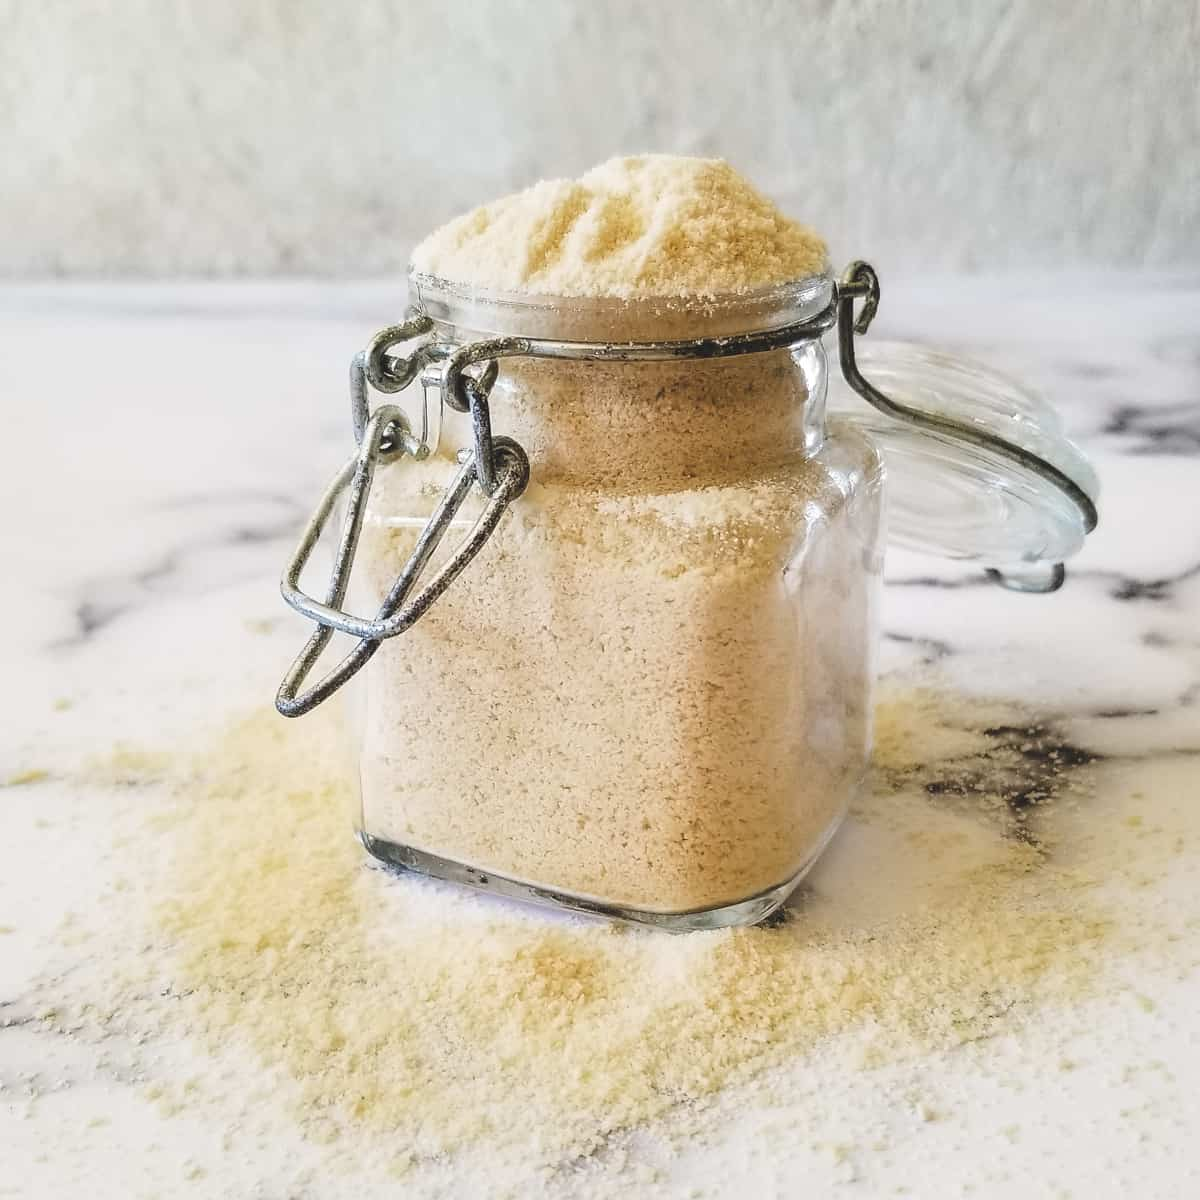 jar of homemade dehydrated buttermilk